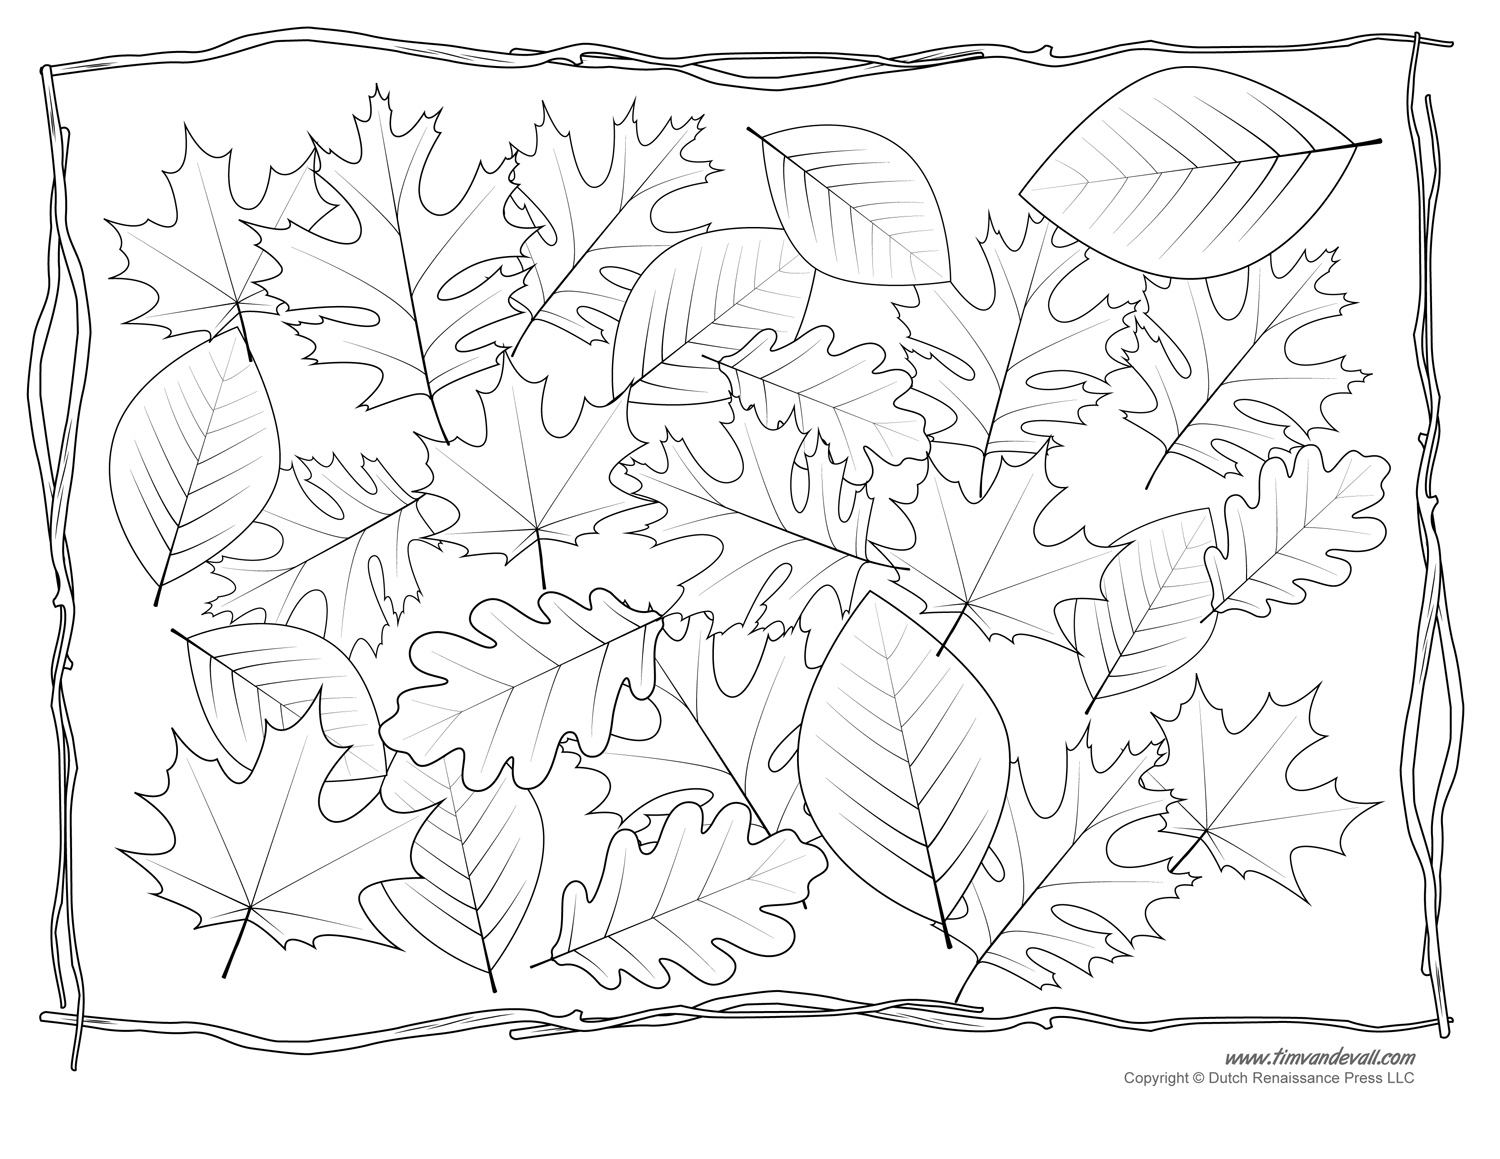 Coloring Pages Renaissance Art Coloring Pages leaf templates coloring pages for kids printables page templates